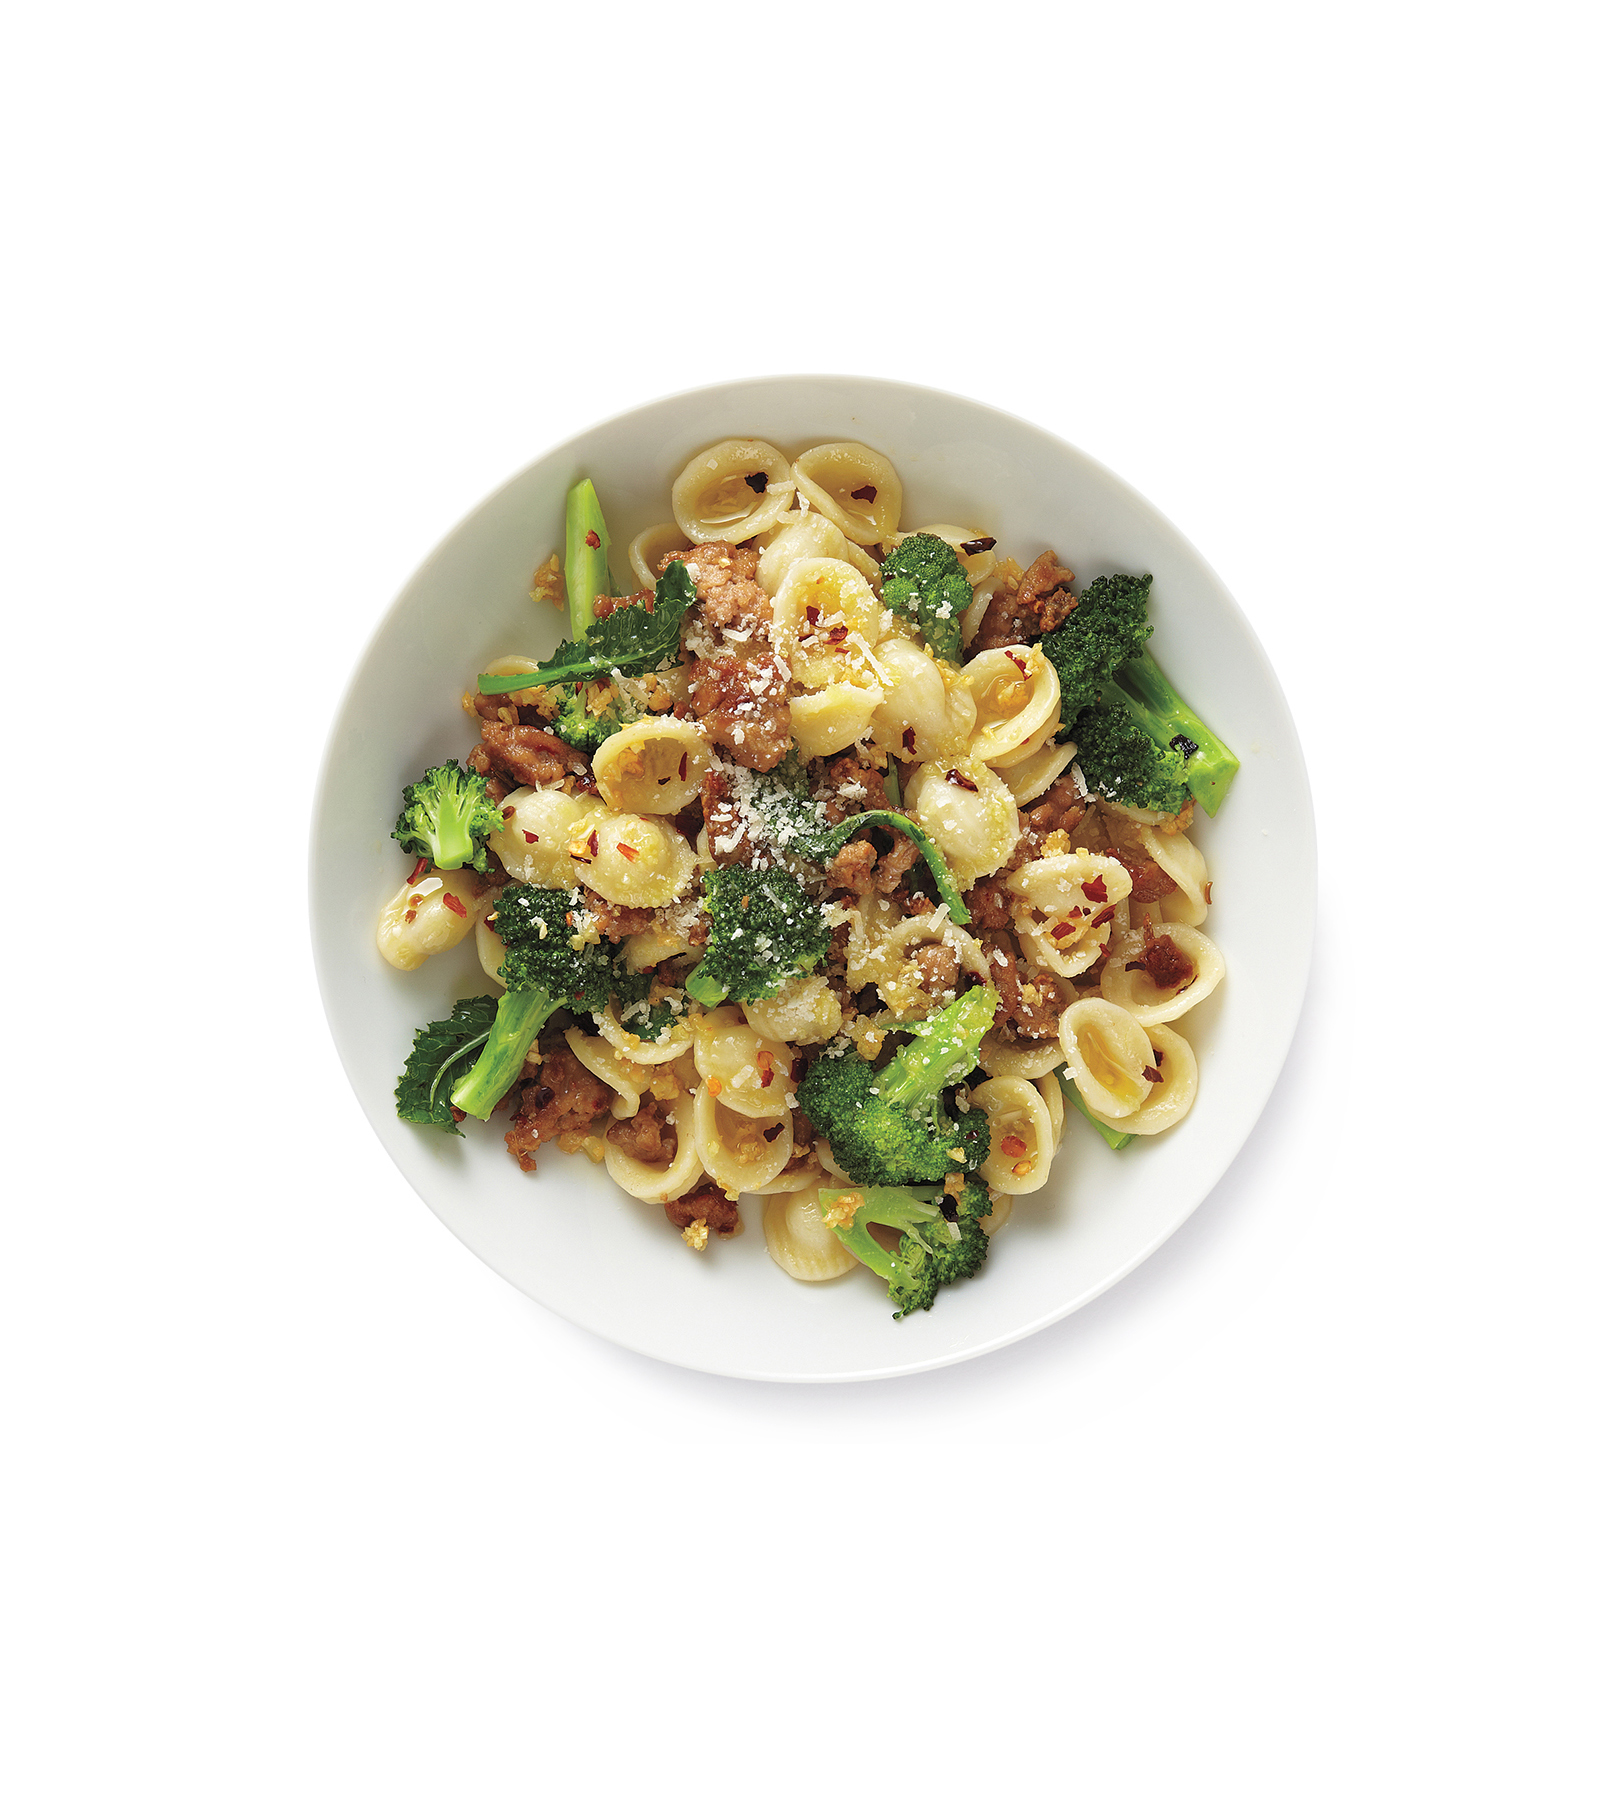 Pasta With Turkey and Broccoli, one of Real Simple's great recipes with ground turkey